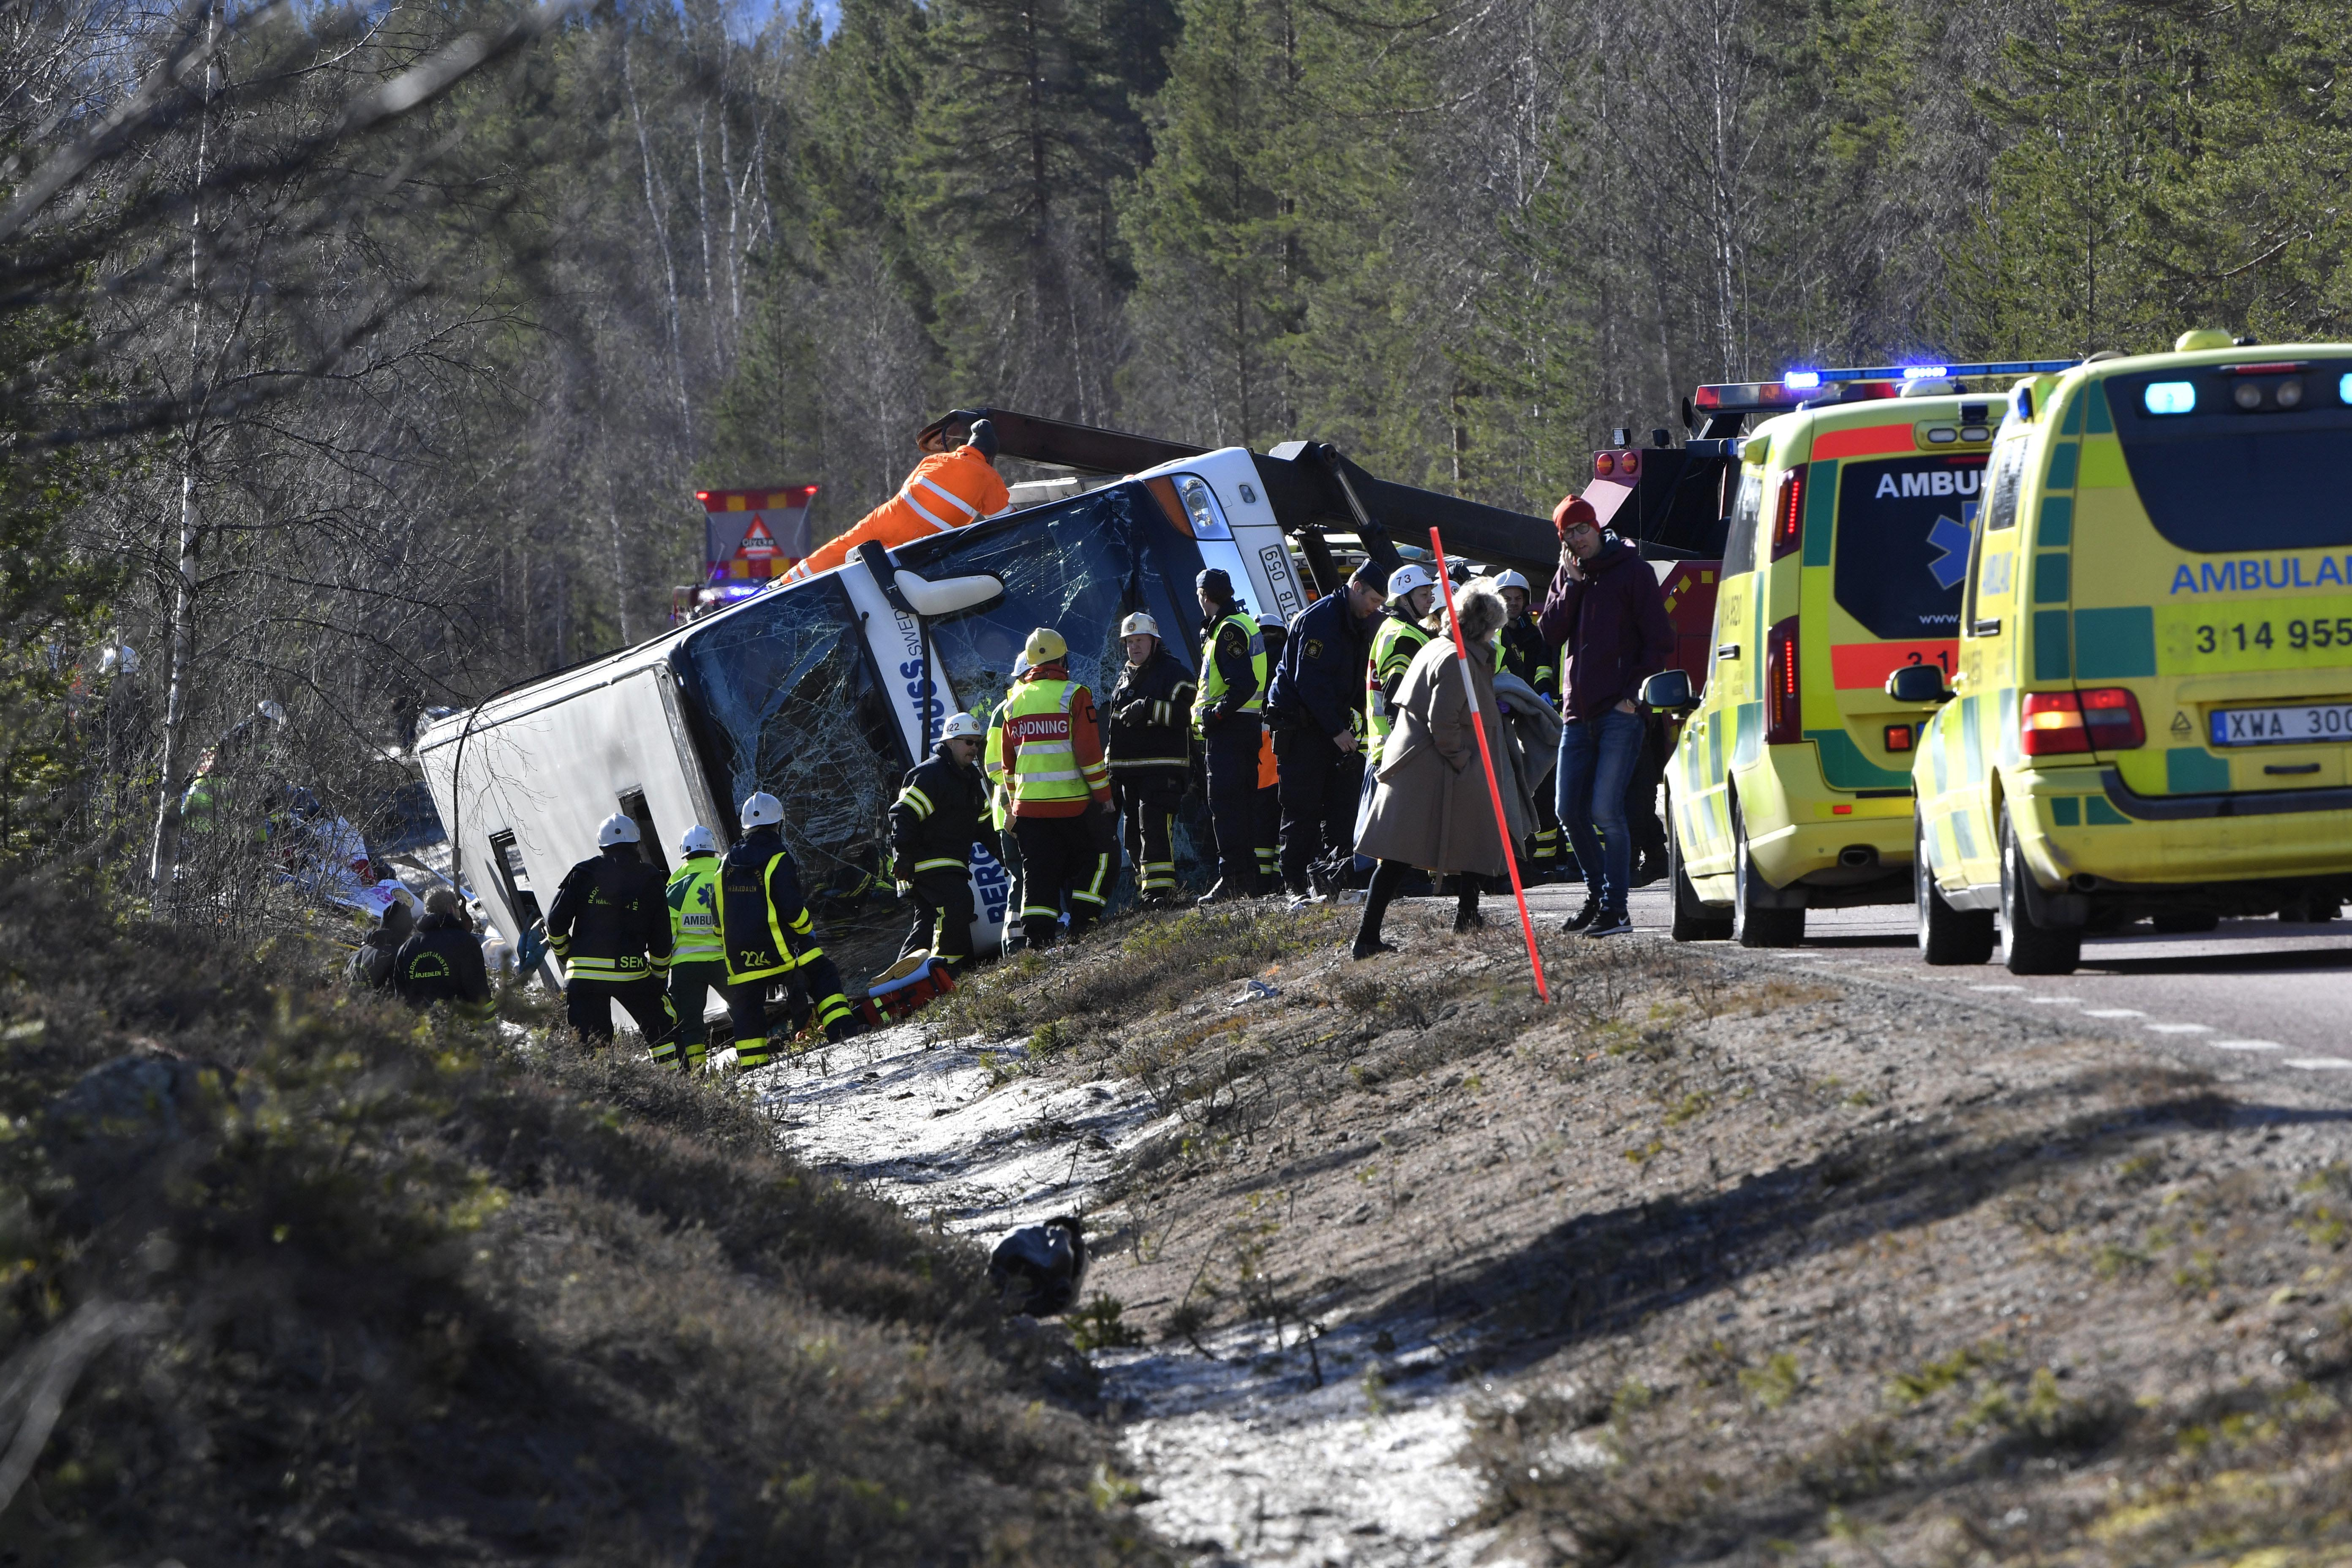 Emergency services and ambulance at the scene of a bus accident, on the E45 between Sveg and Fagelsjo in Sweden, on Sunday, April 2, 2017. ?Photo: Nisse Schmidt/TT via AP